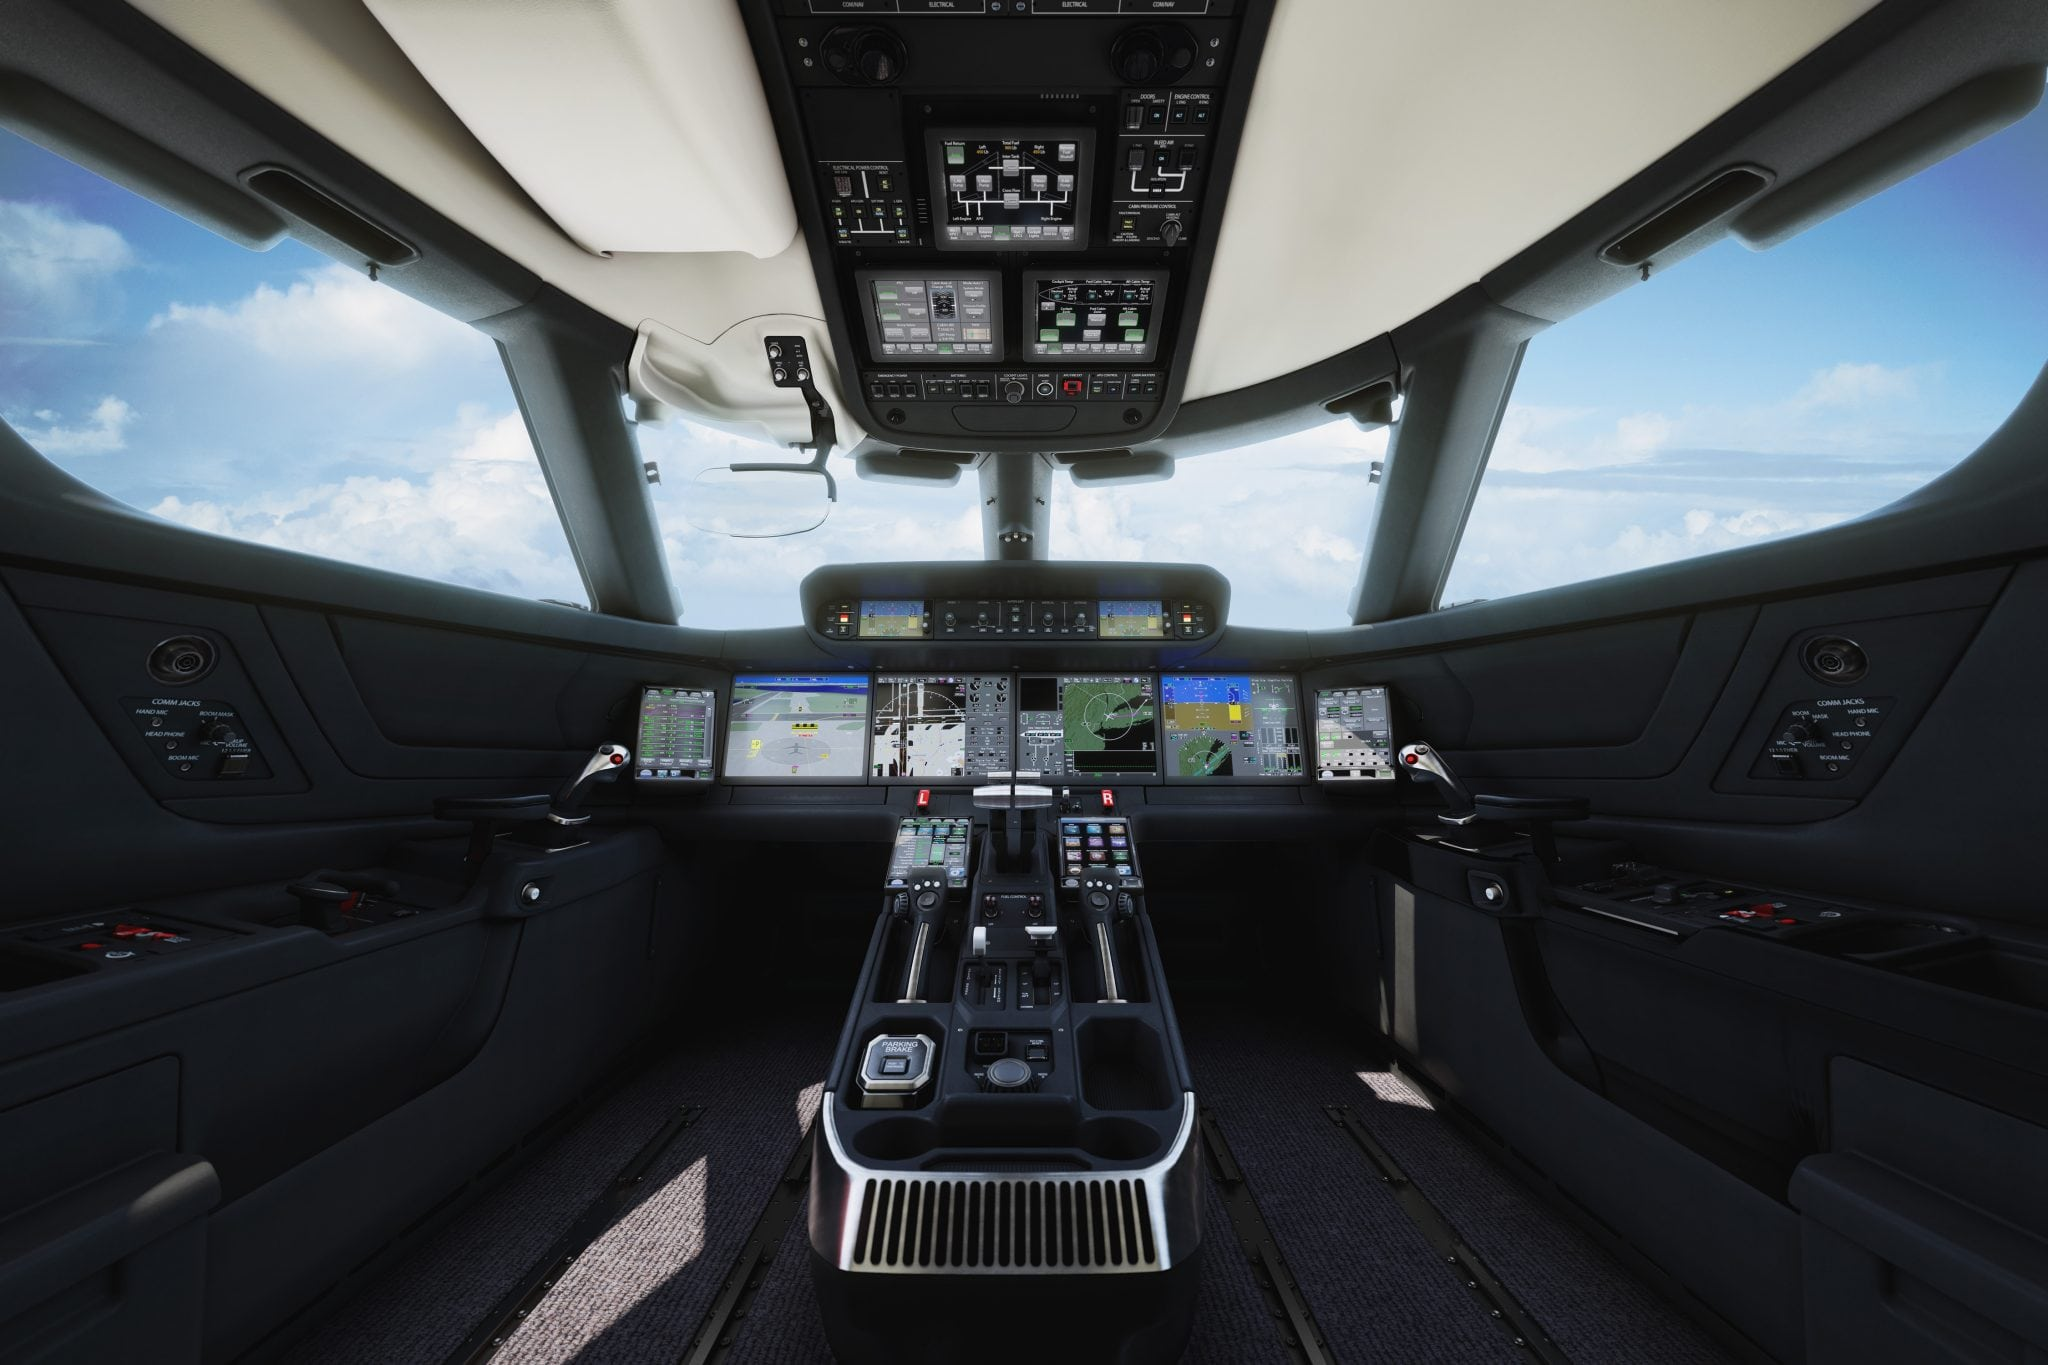 Flight deck of Gulfstream G500 equipped with Honeywell SmartView SVS and touchscreen technologies, among others